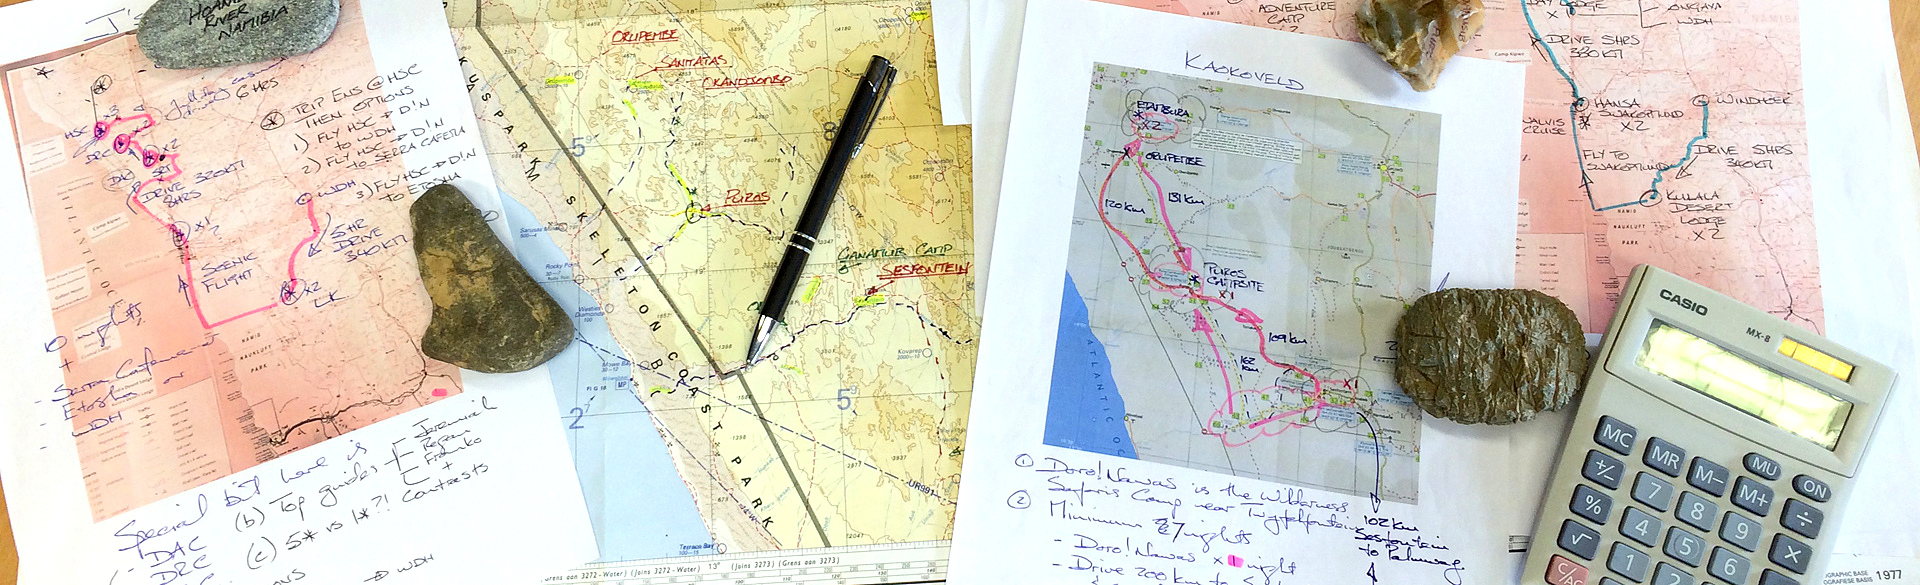 Planning self drive safari in Namibia